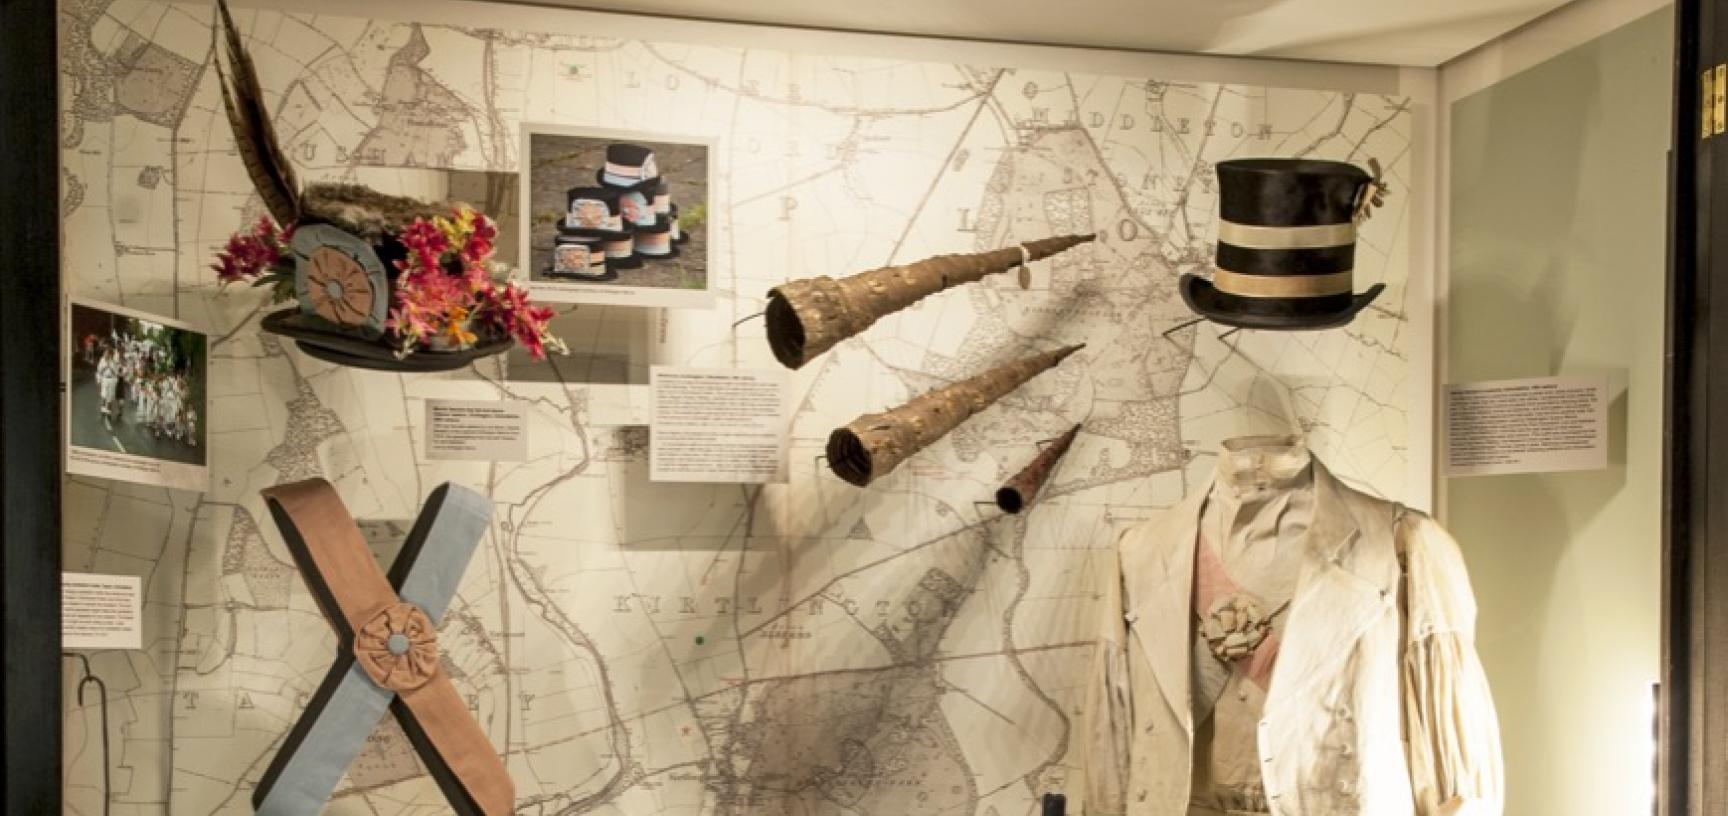 'Oxfordshire Folklore and Customs: Celebrating the Centenary of Antiquarian and Folklorist Percy Manning', Pitt Rivers Museum, University of Oxford, 20 February to 15 May 2017. (Copyright Pitt Rivers Museum, University of Oxford)